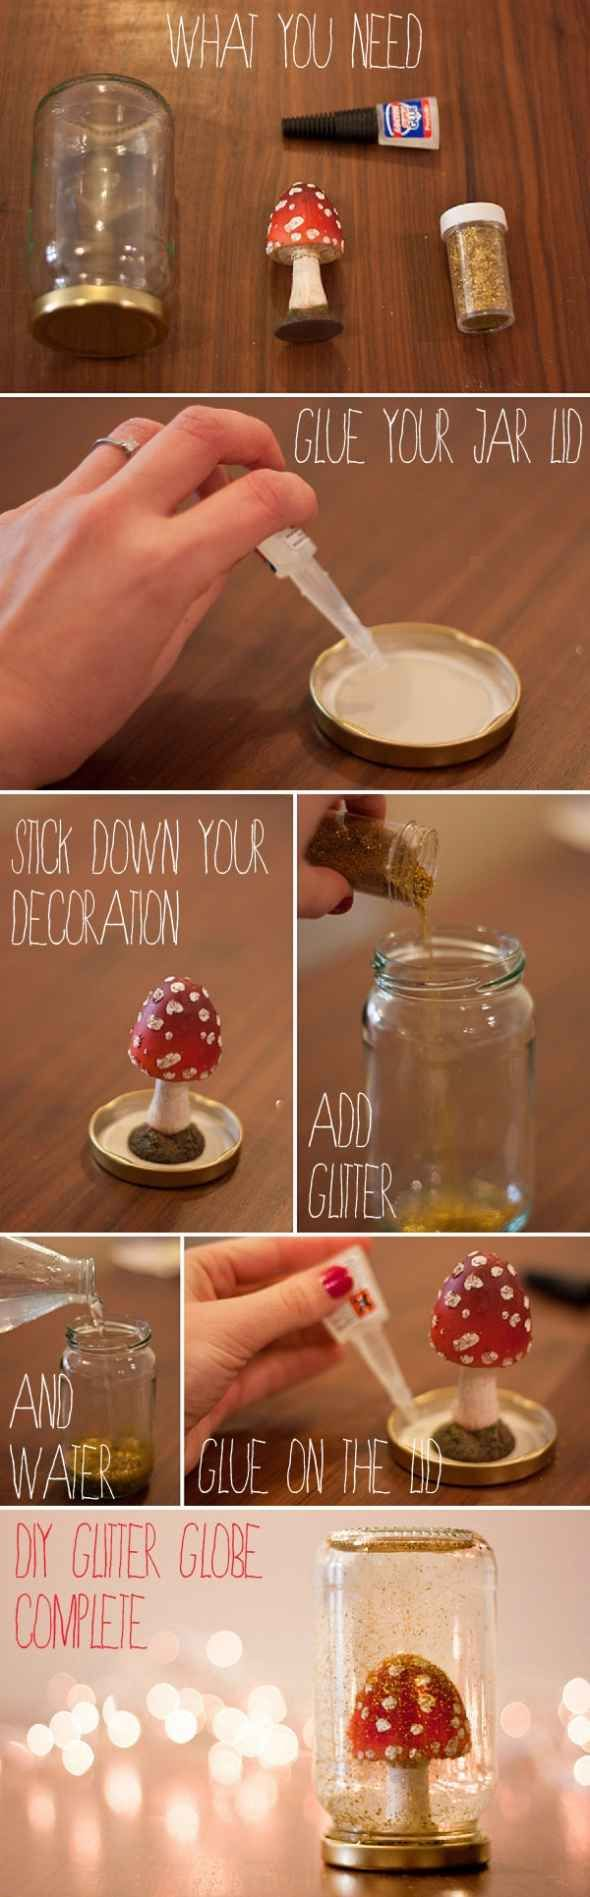 In case you have any spare trinkets lying around that you don't know what to do with...